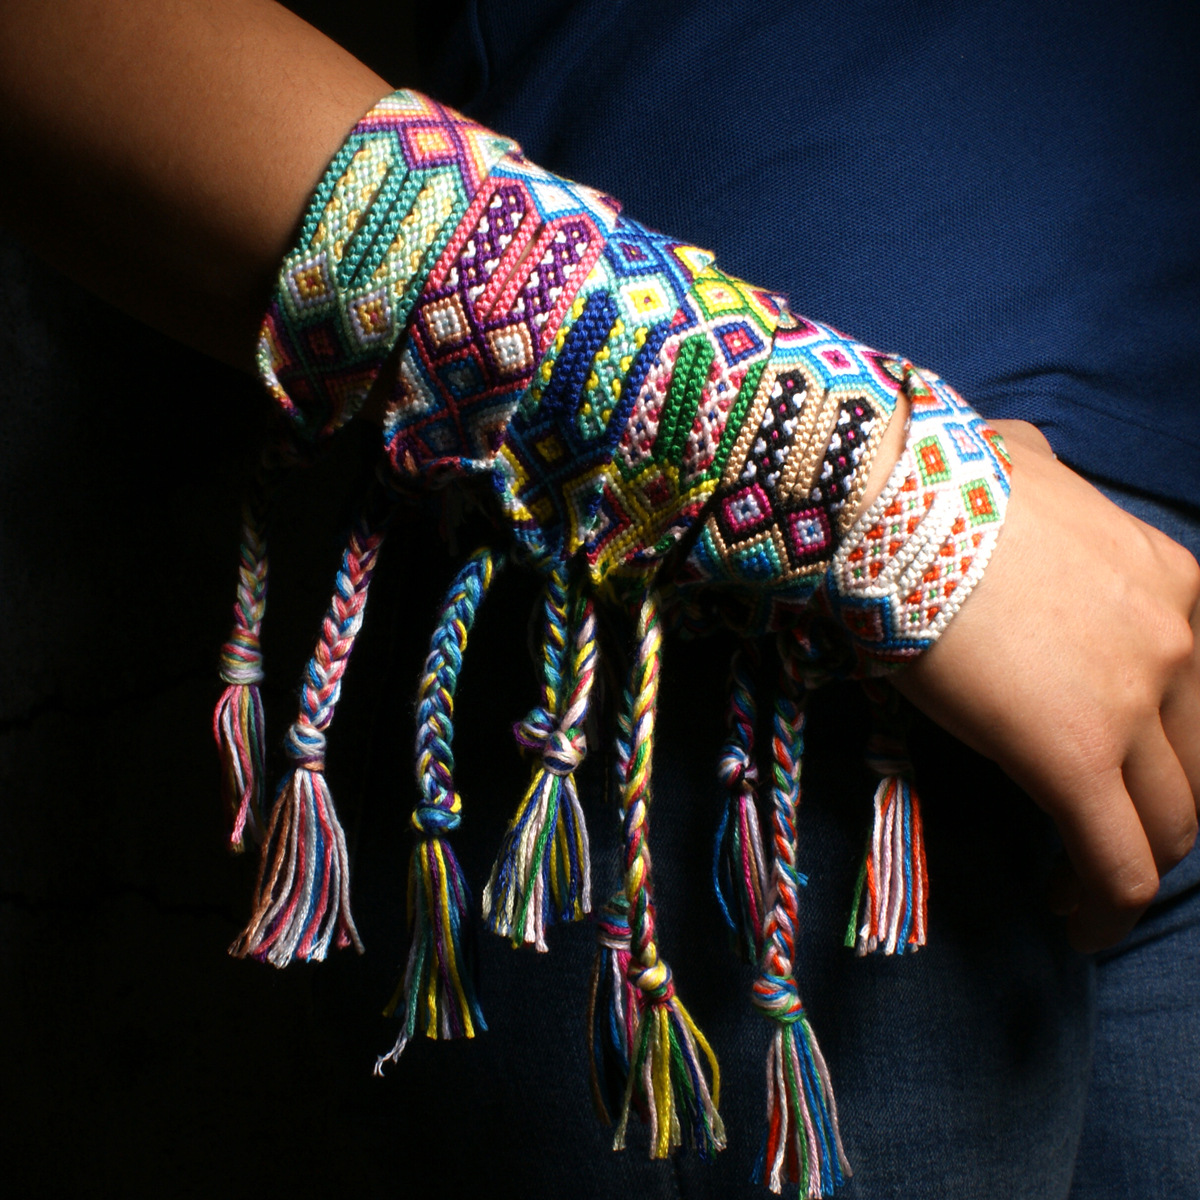 Bohemian Charm Bracelet Hand Weave Colorful Tassels Enthic Jewelry Handmade Bracelet for Women Men